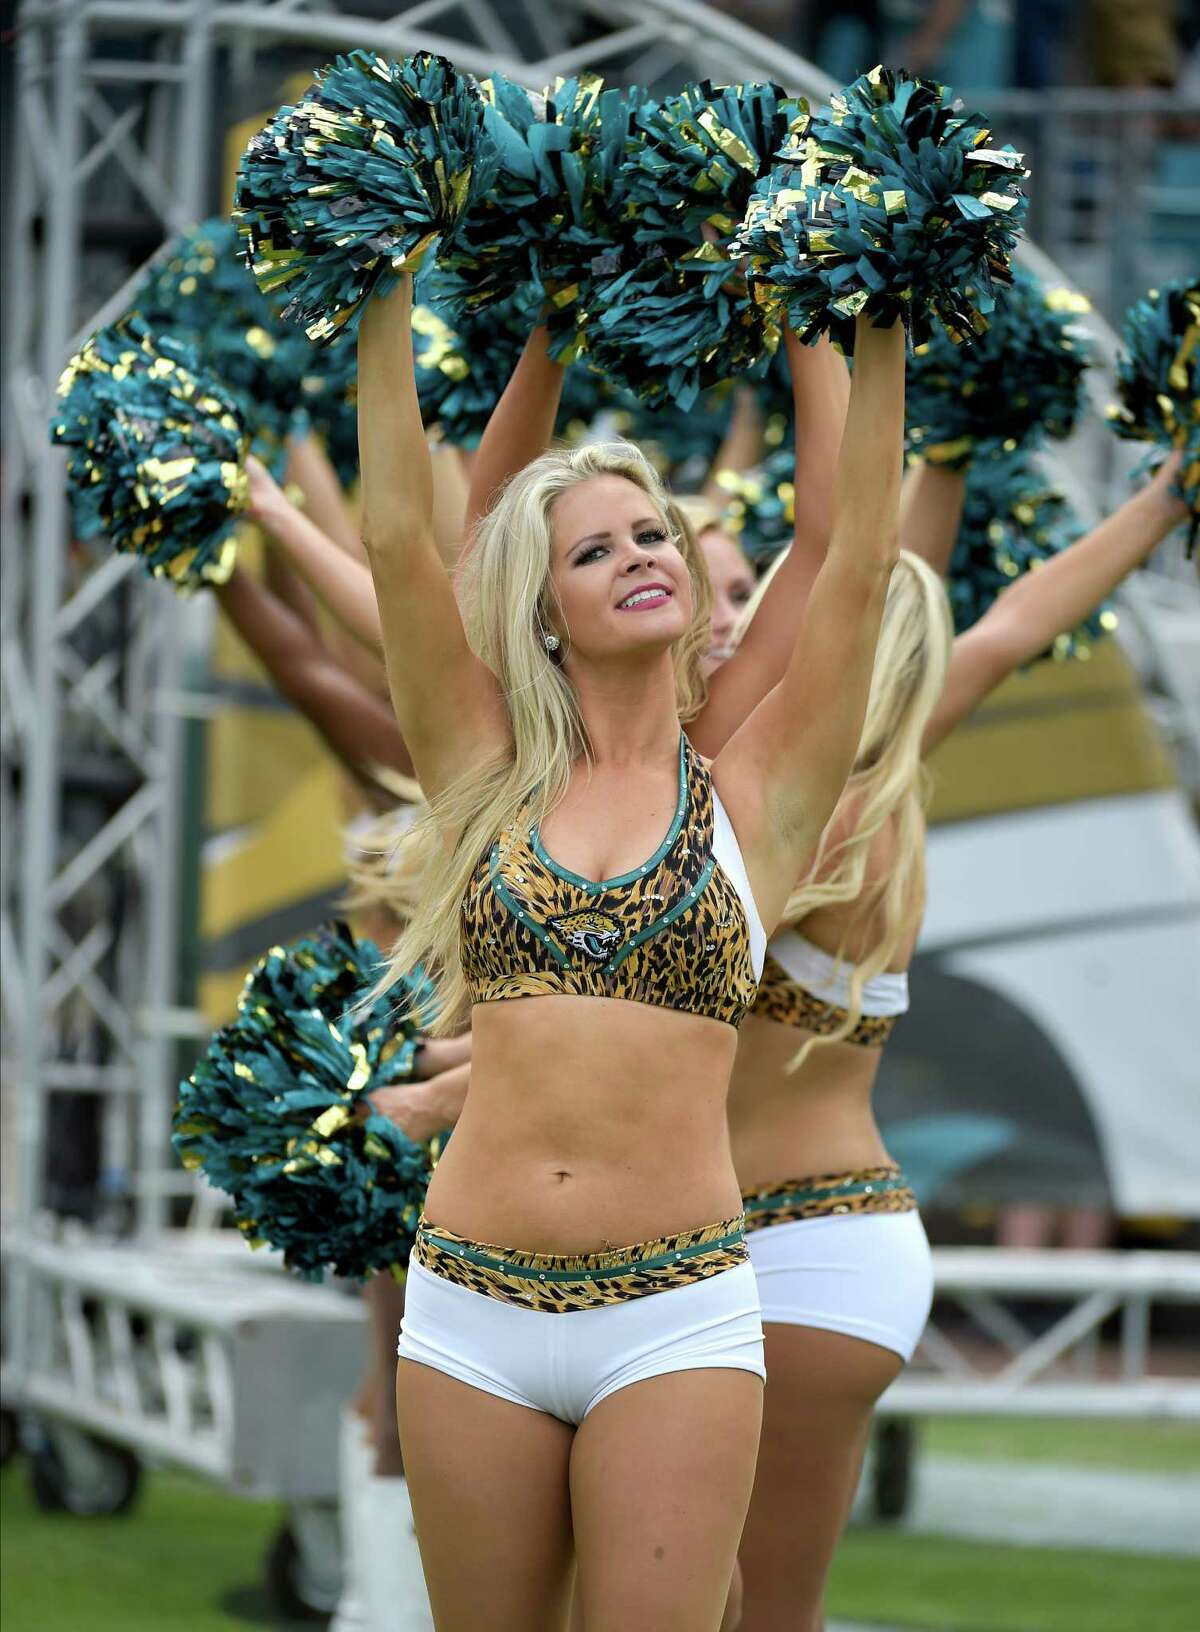 Jacksonville Jaguars cheerleaders perform during the first half of an NFL football game against the Indianapolis Colts in Jacksonville, Fla., Sunday, Dec. 13, 2015.(AP Photo/Phelan M. Ebenhack)